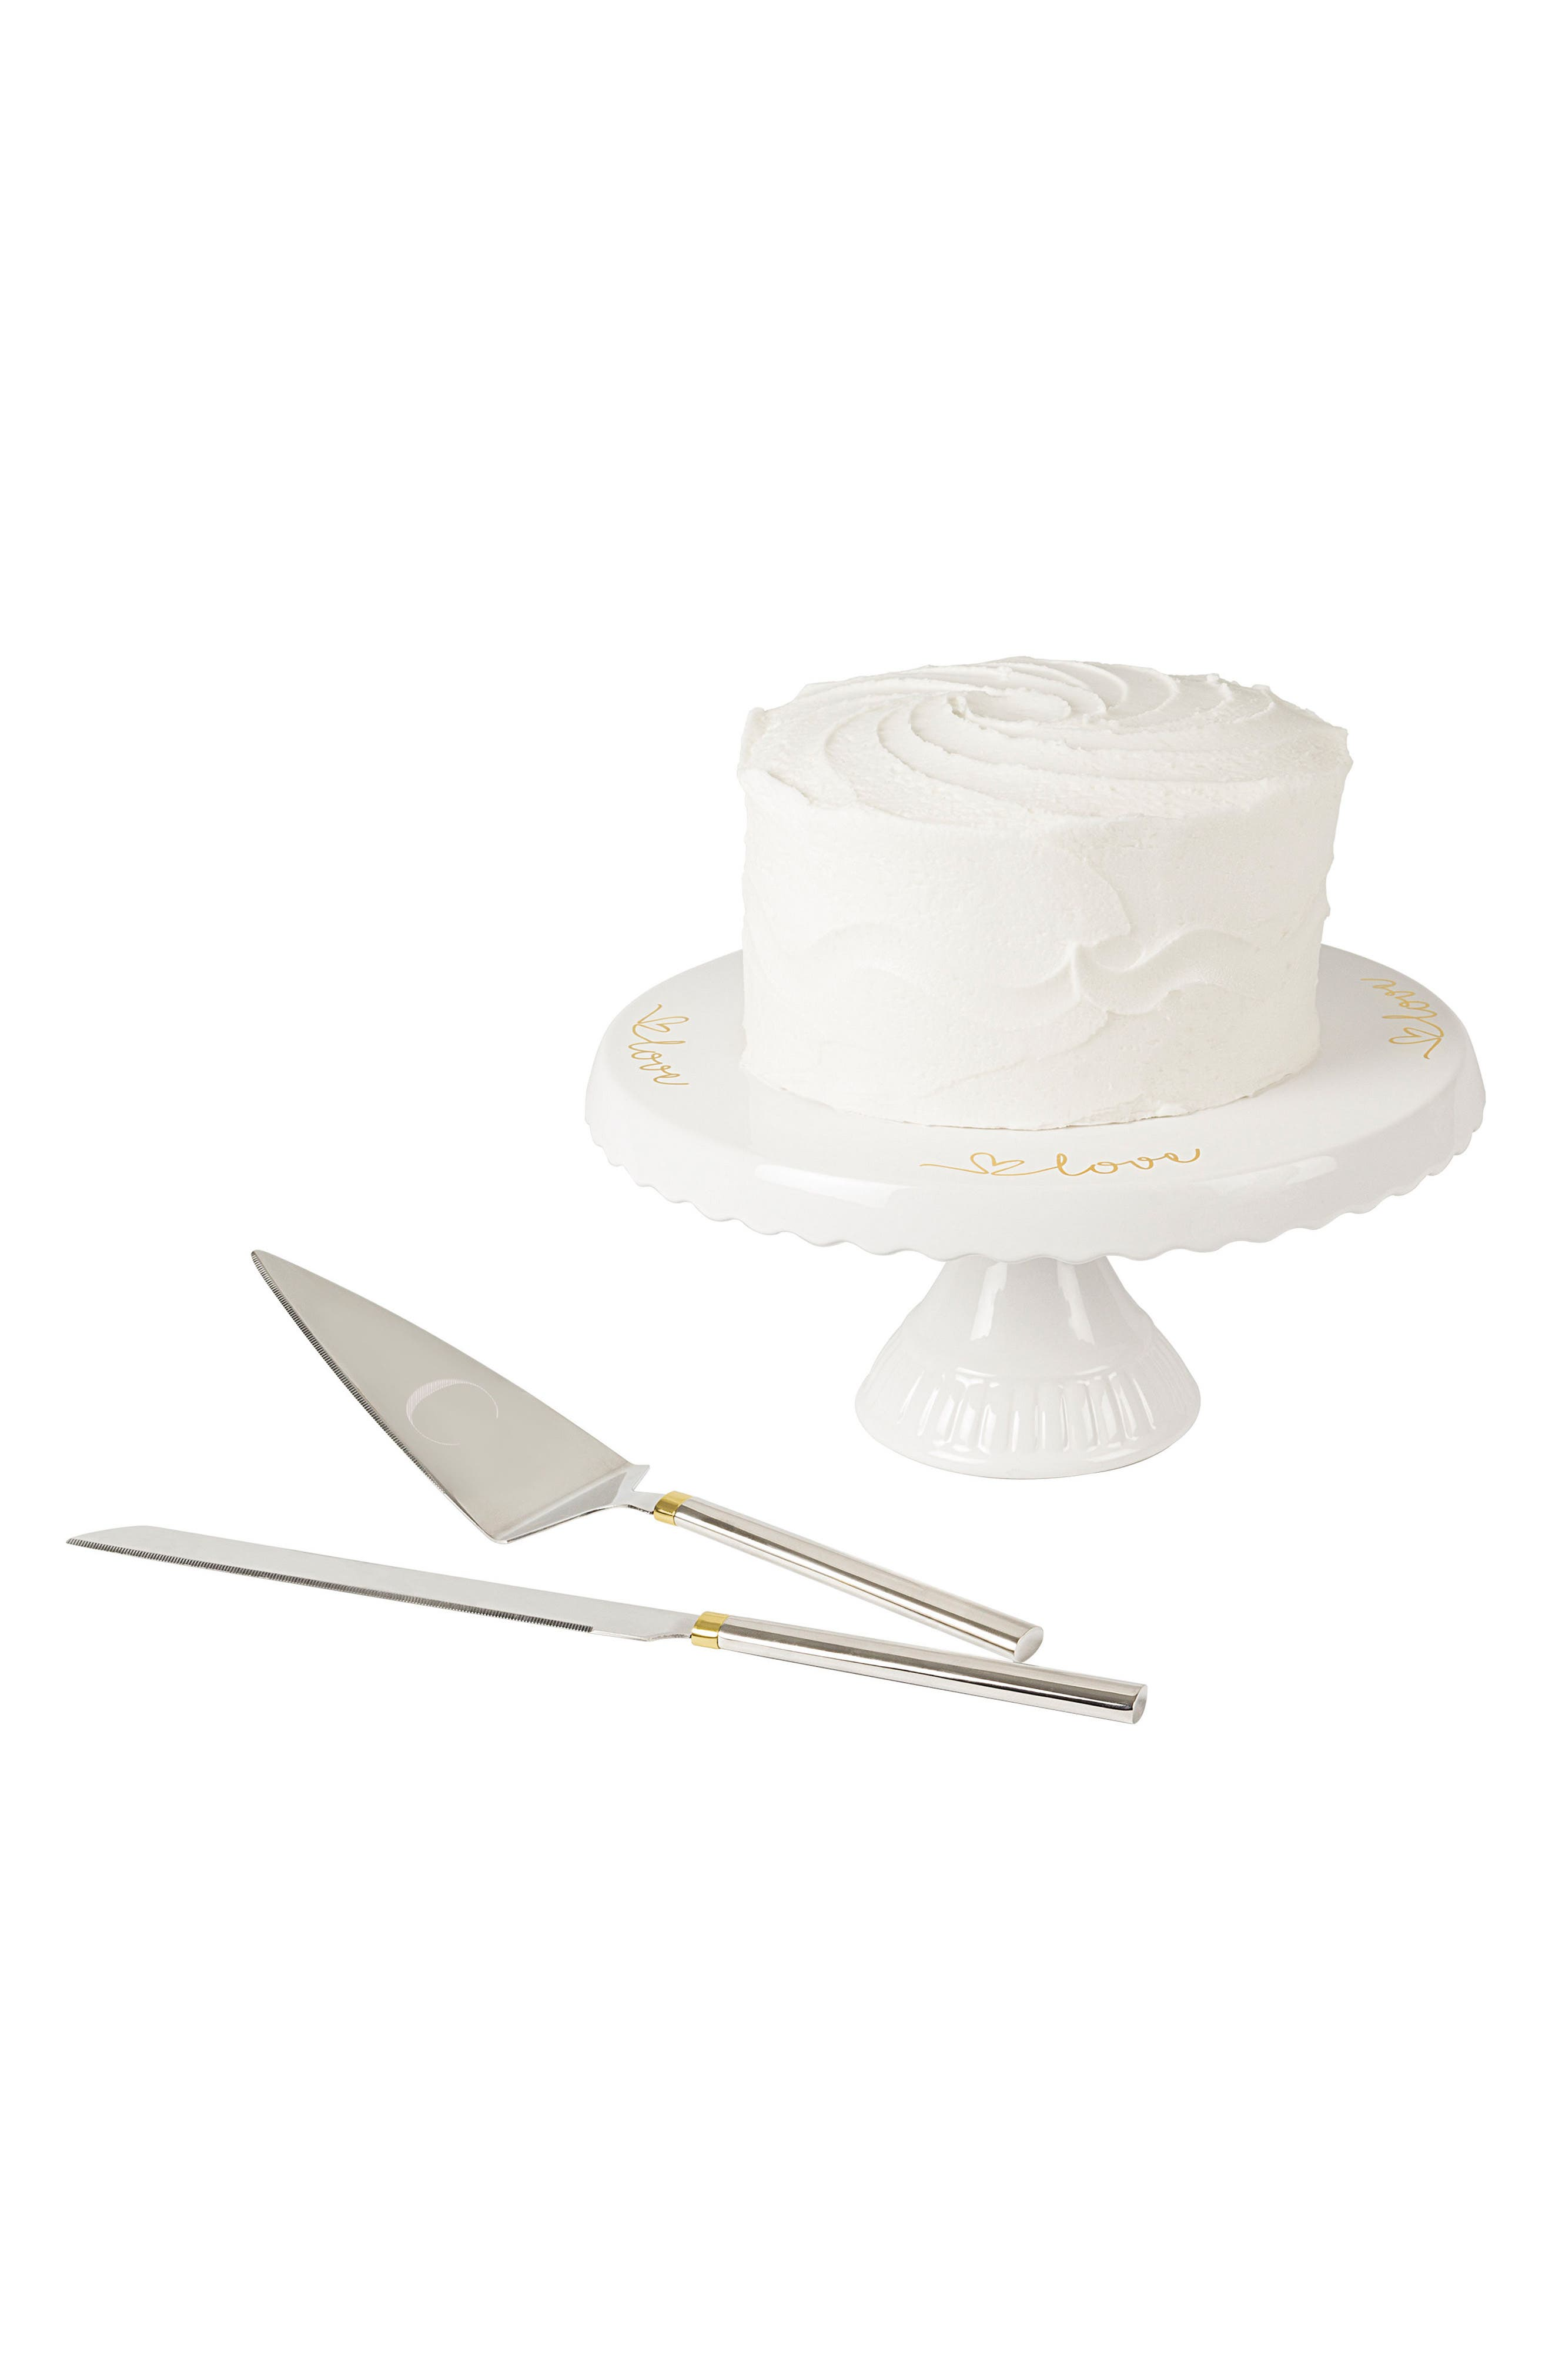 Love Monogram Cake Stand & Server Set,                             Main thumbnail 4, color,